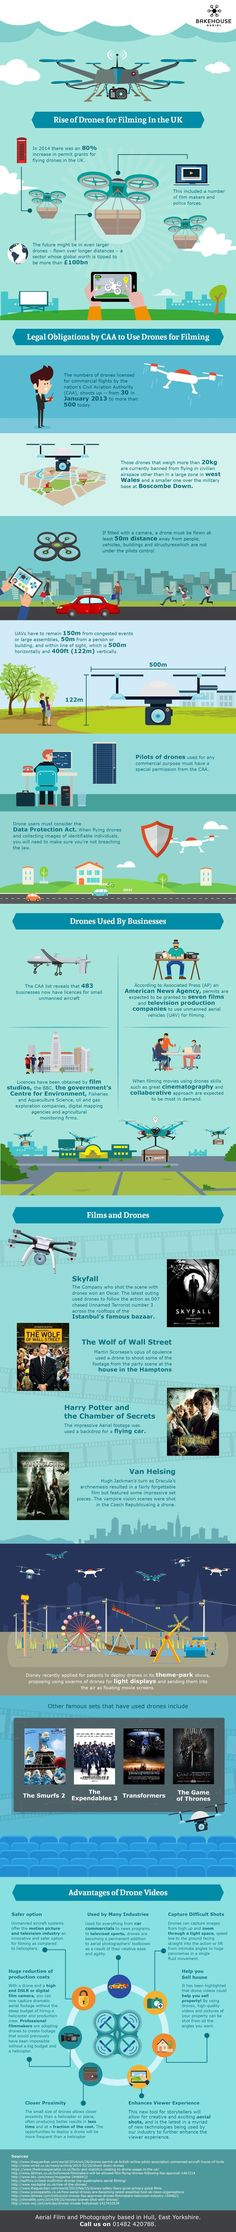 Drone Infographics : Aerial Filming with Drones in the UK Aerial Filming, Drone Technology, Medical Technology, Energy Technology, Must Have Gadgets, Aerial Drone, Flying Drones, Marketing Data, Drone Quadcopter